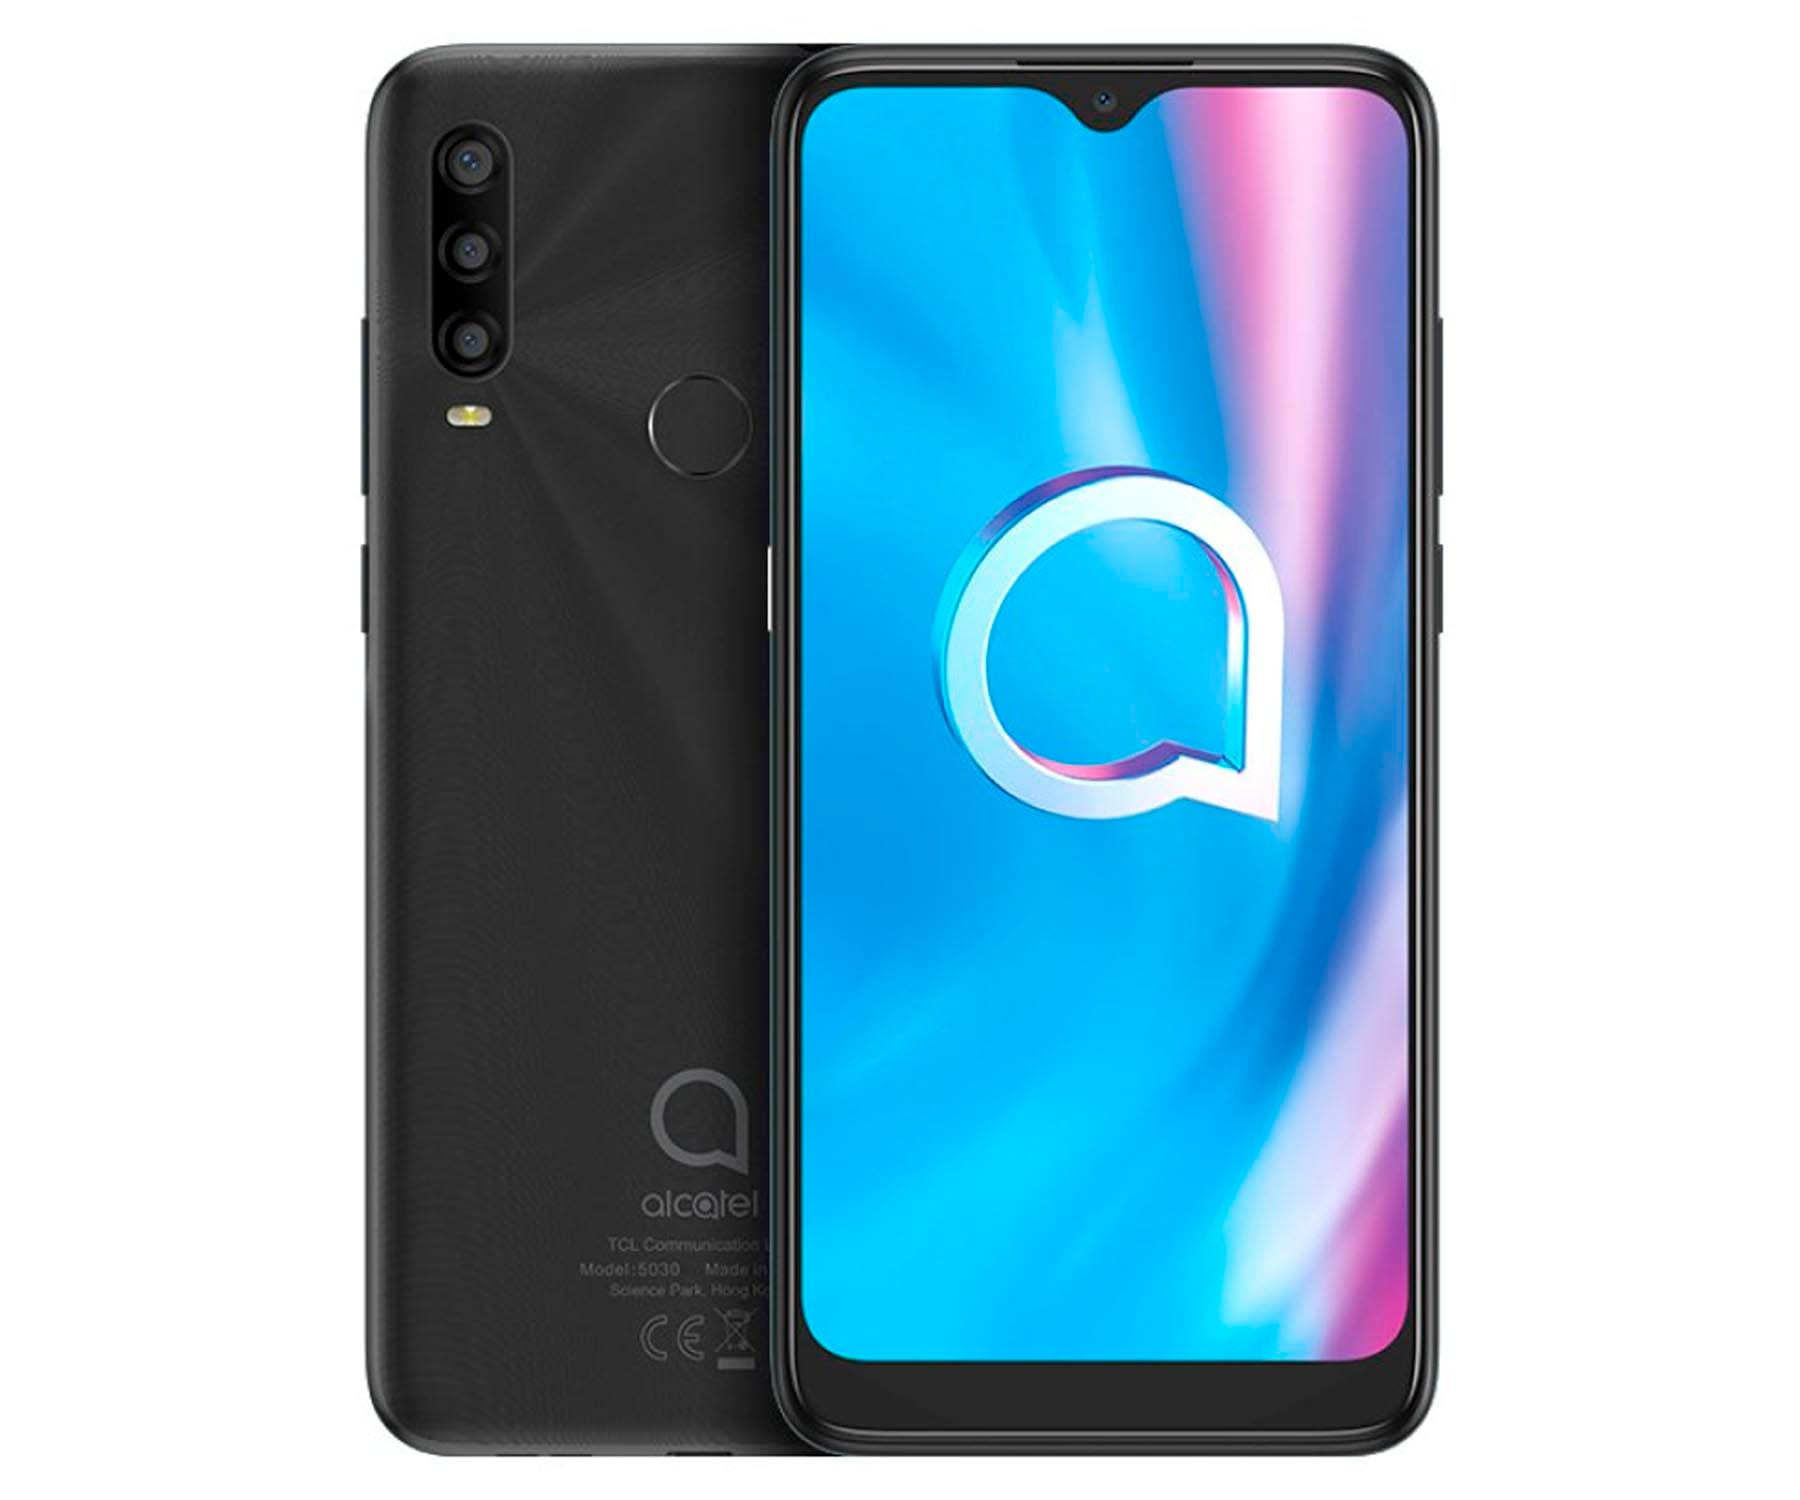 ALCATEL 1SE 5030F GRIS MÓVIL 4G DUAL SIM 6.22'' IPS HD+ OCTACORE 64GB 4GB RAM TRICAM 13MP SELFIES 5MP